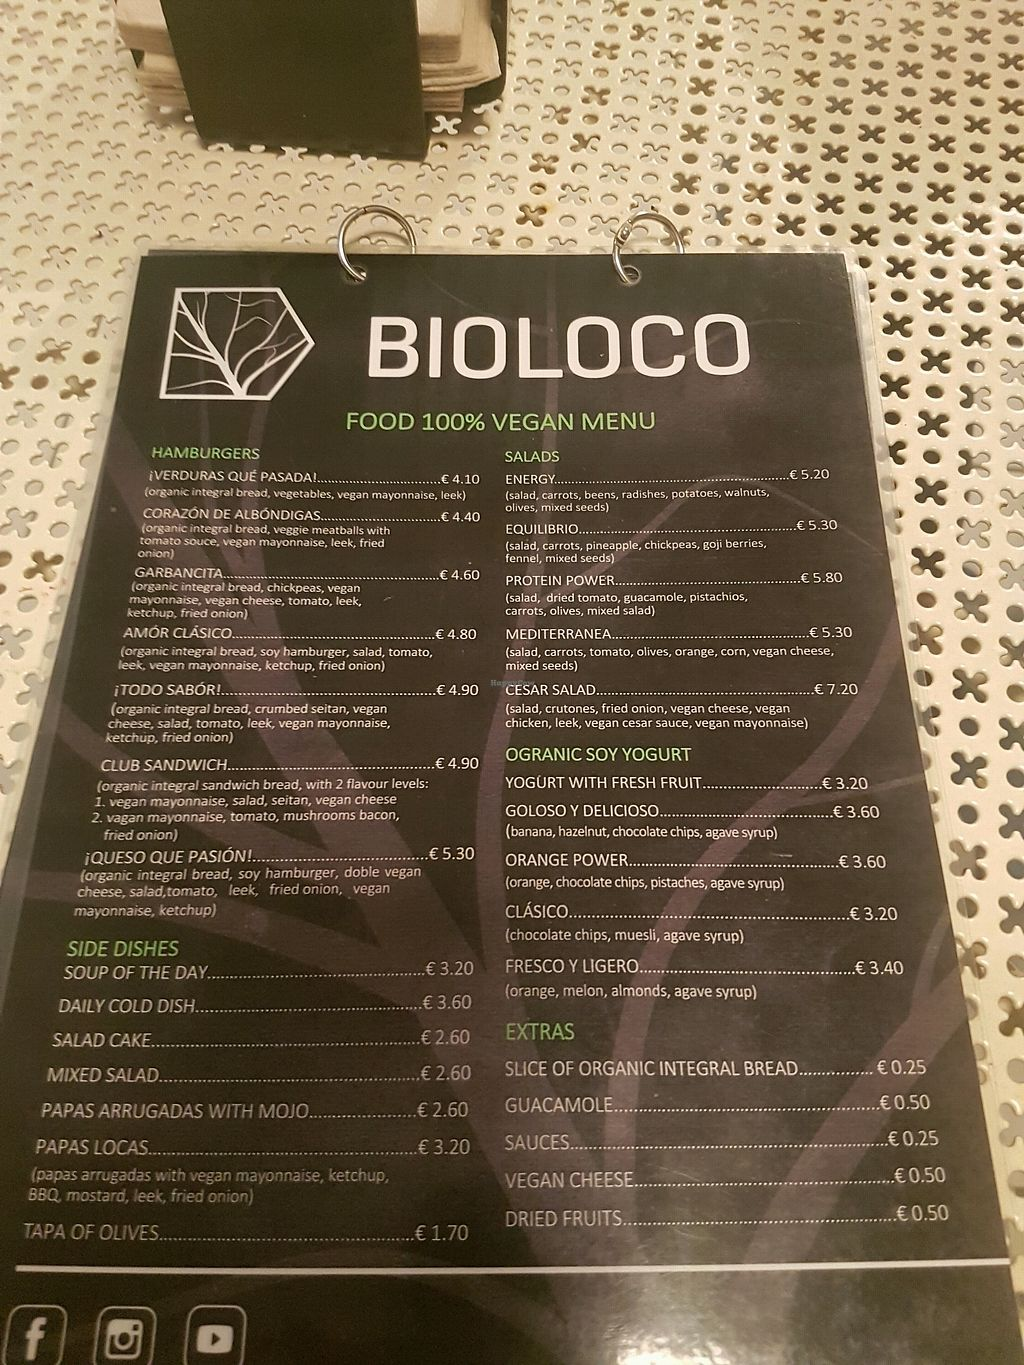 """Photo of Bioloco  by <a href=""""/members/profile/MissEni78"""">MissEni78</a> <br/>menu <br/> November 5, 2017  - <a href='/contact/abuse/image/76580/322332'>Report</a>"""